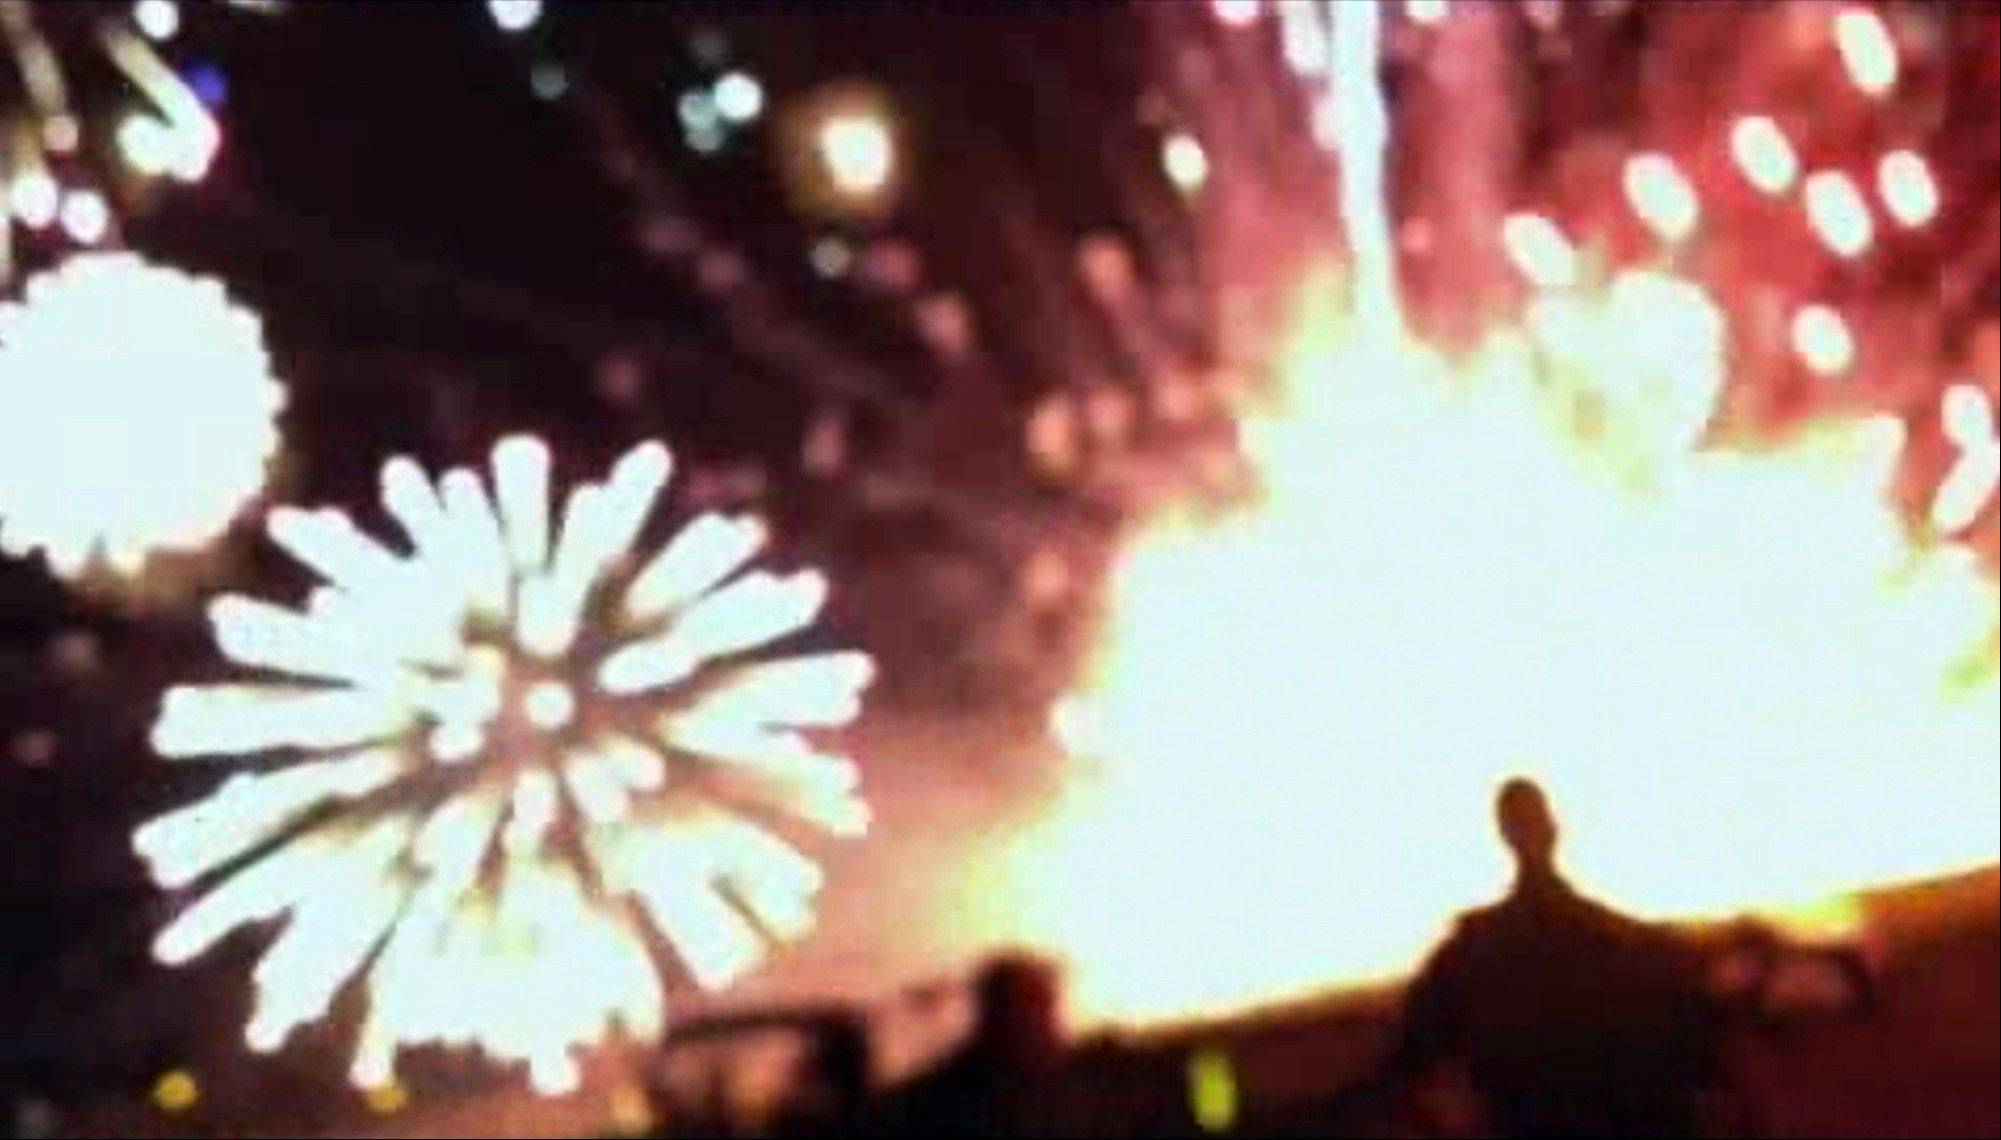 In this frame grab from video provided by Zach Reister, authenticated by checking against known locations and events, and consistent with Associated Press reporting, fireworks explode in the air and on the ground during a fireworks show in Simi Valley, Calif., Thursday, July 4, 2013. More than two dozen people were injured.